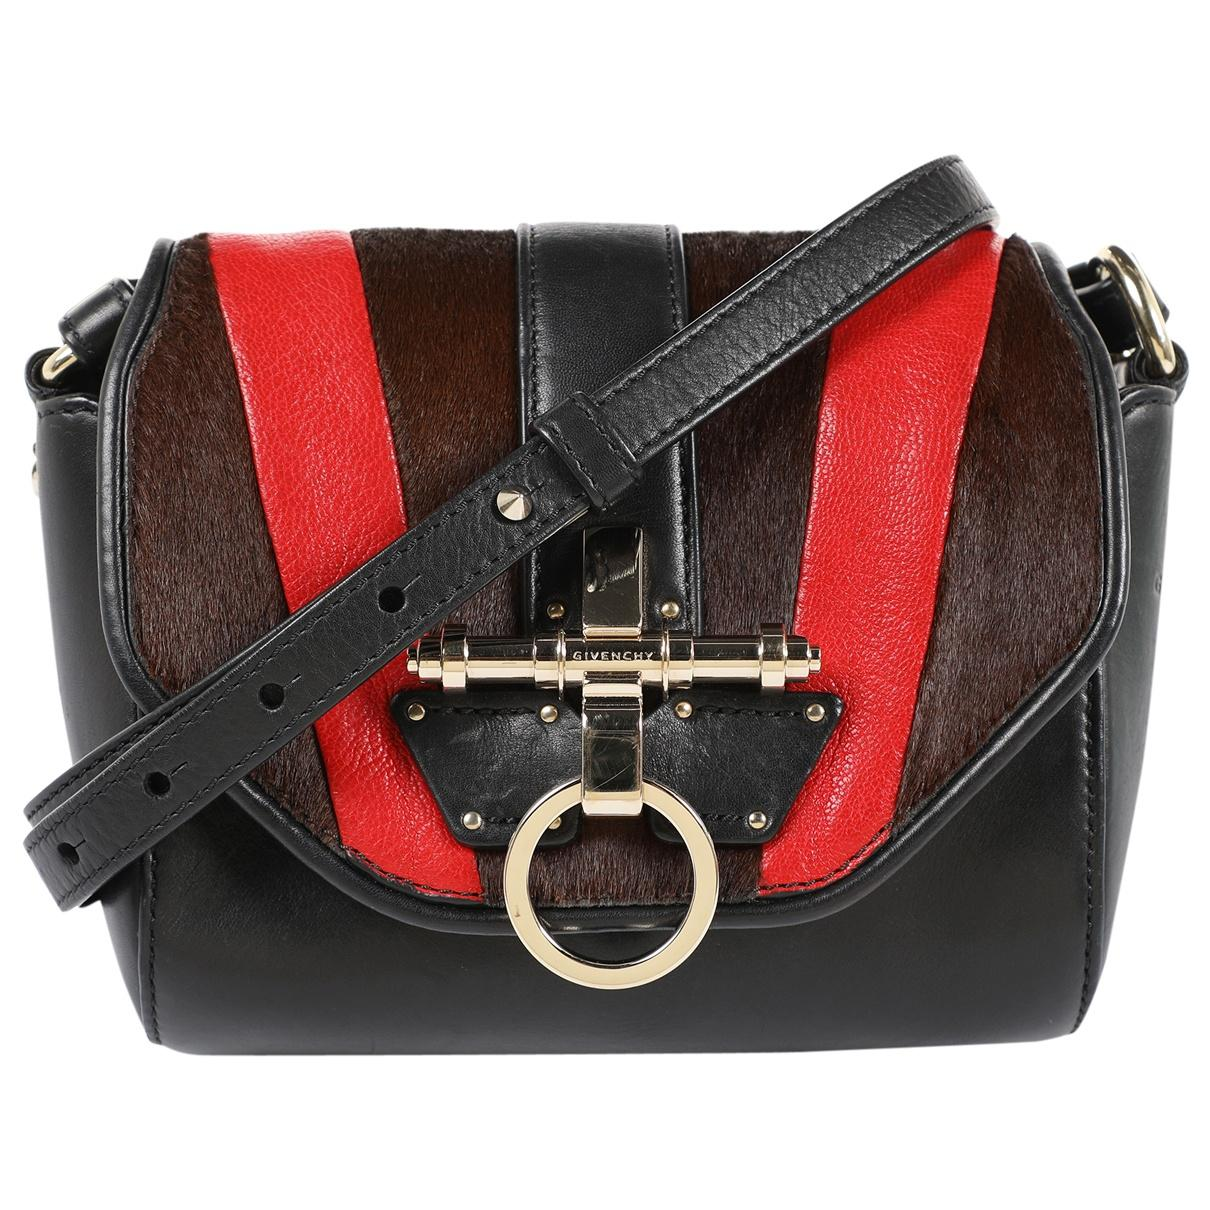 be505fc4baee Givenchy - Multicolor Obsedia Pony-style Calfskin Clutch Bag - Lyst. View  fullscreen